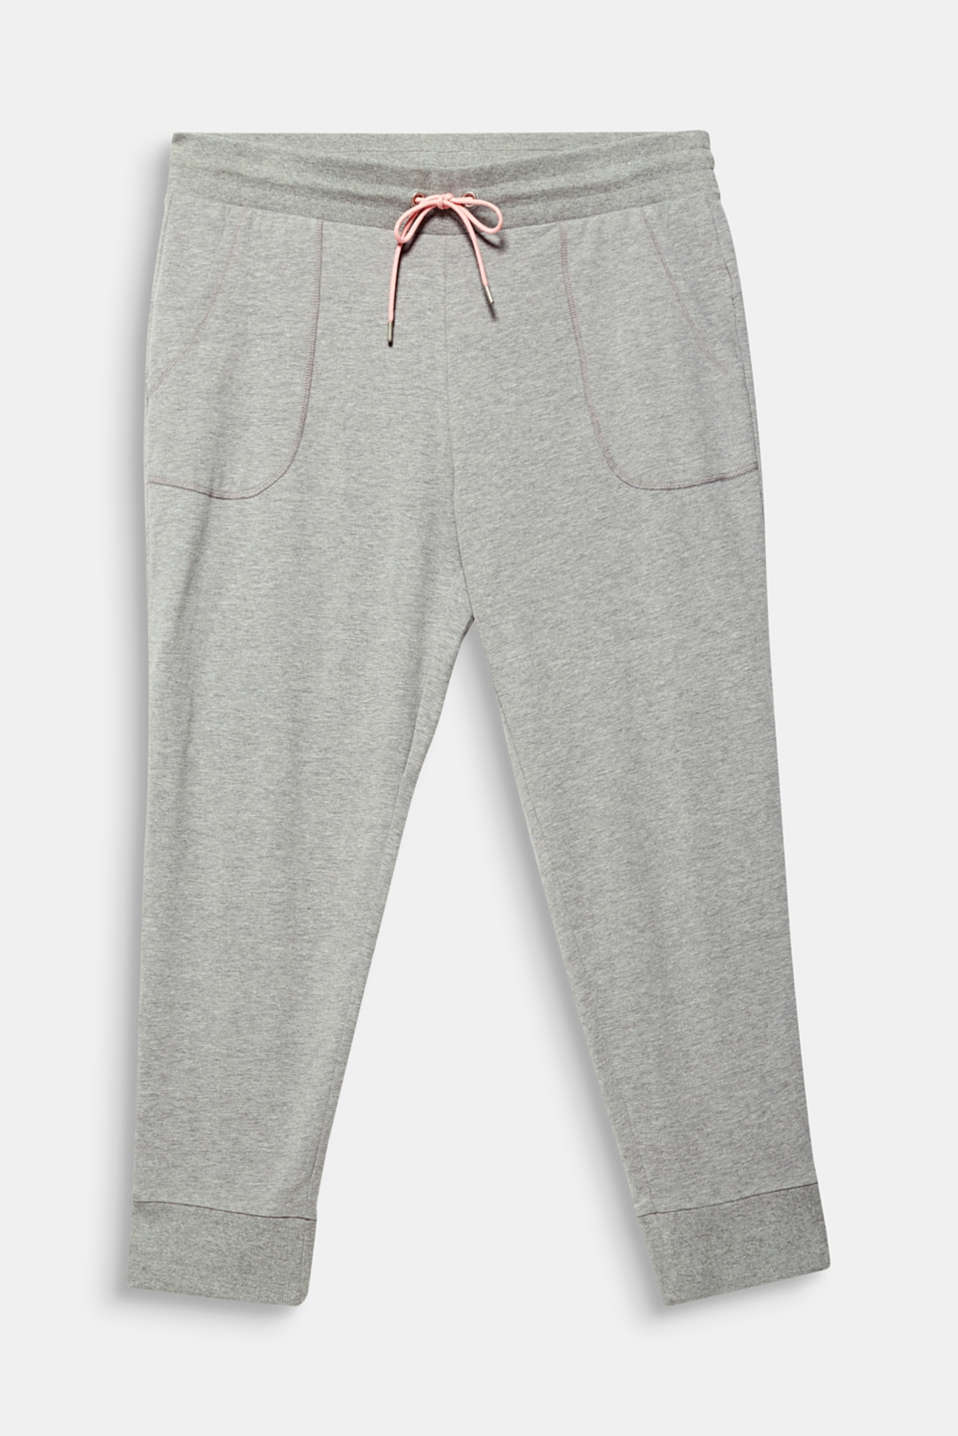 NEW YEAR. NEW ME. Tracksuit bottoms with a contrasting cord tie, MEDIUM GREY 2, detail image number 6